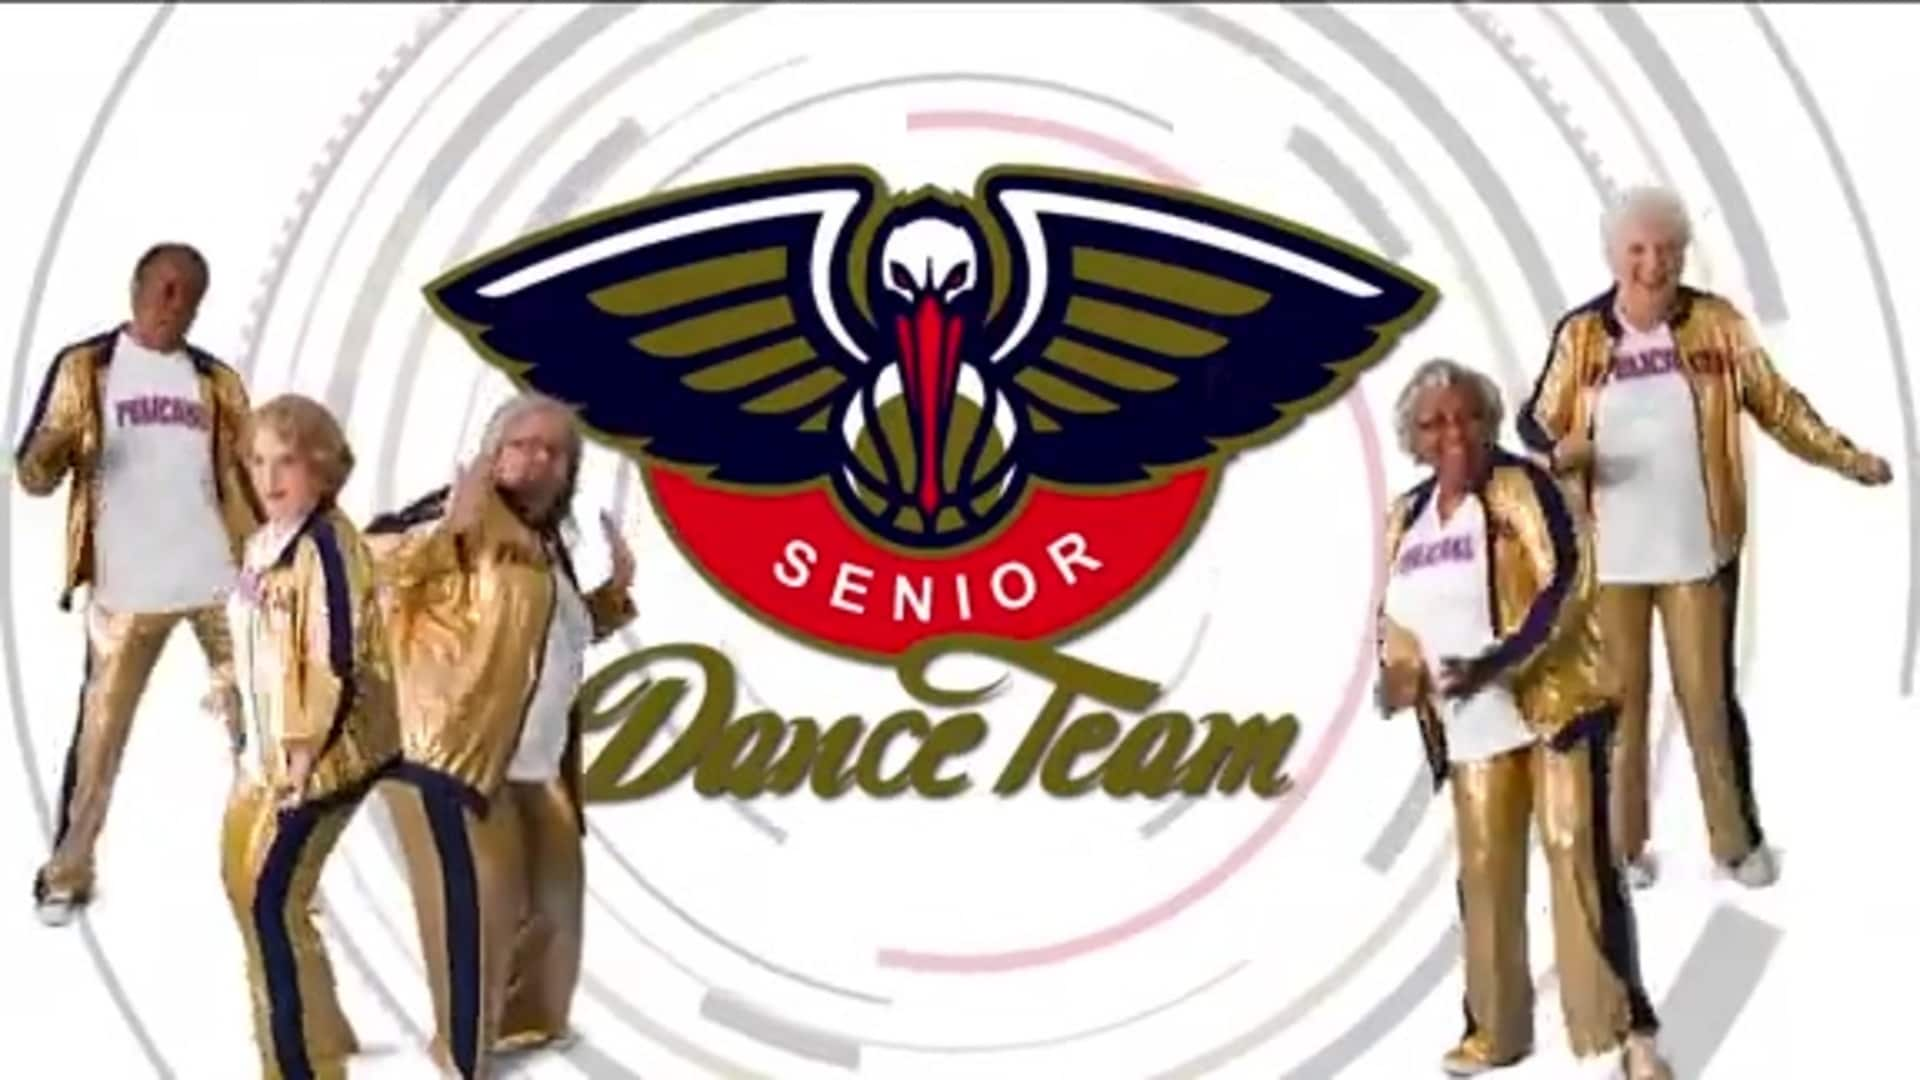 Entertainment: Pelicans Senior Dance Team performance - December 29 vs. Houston Rockets